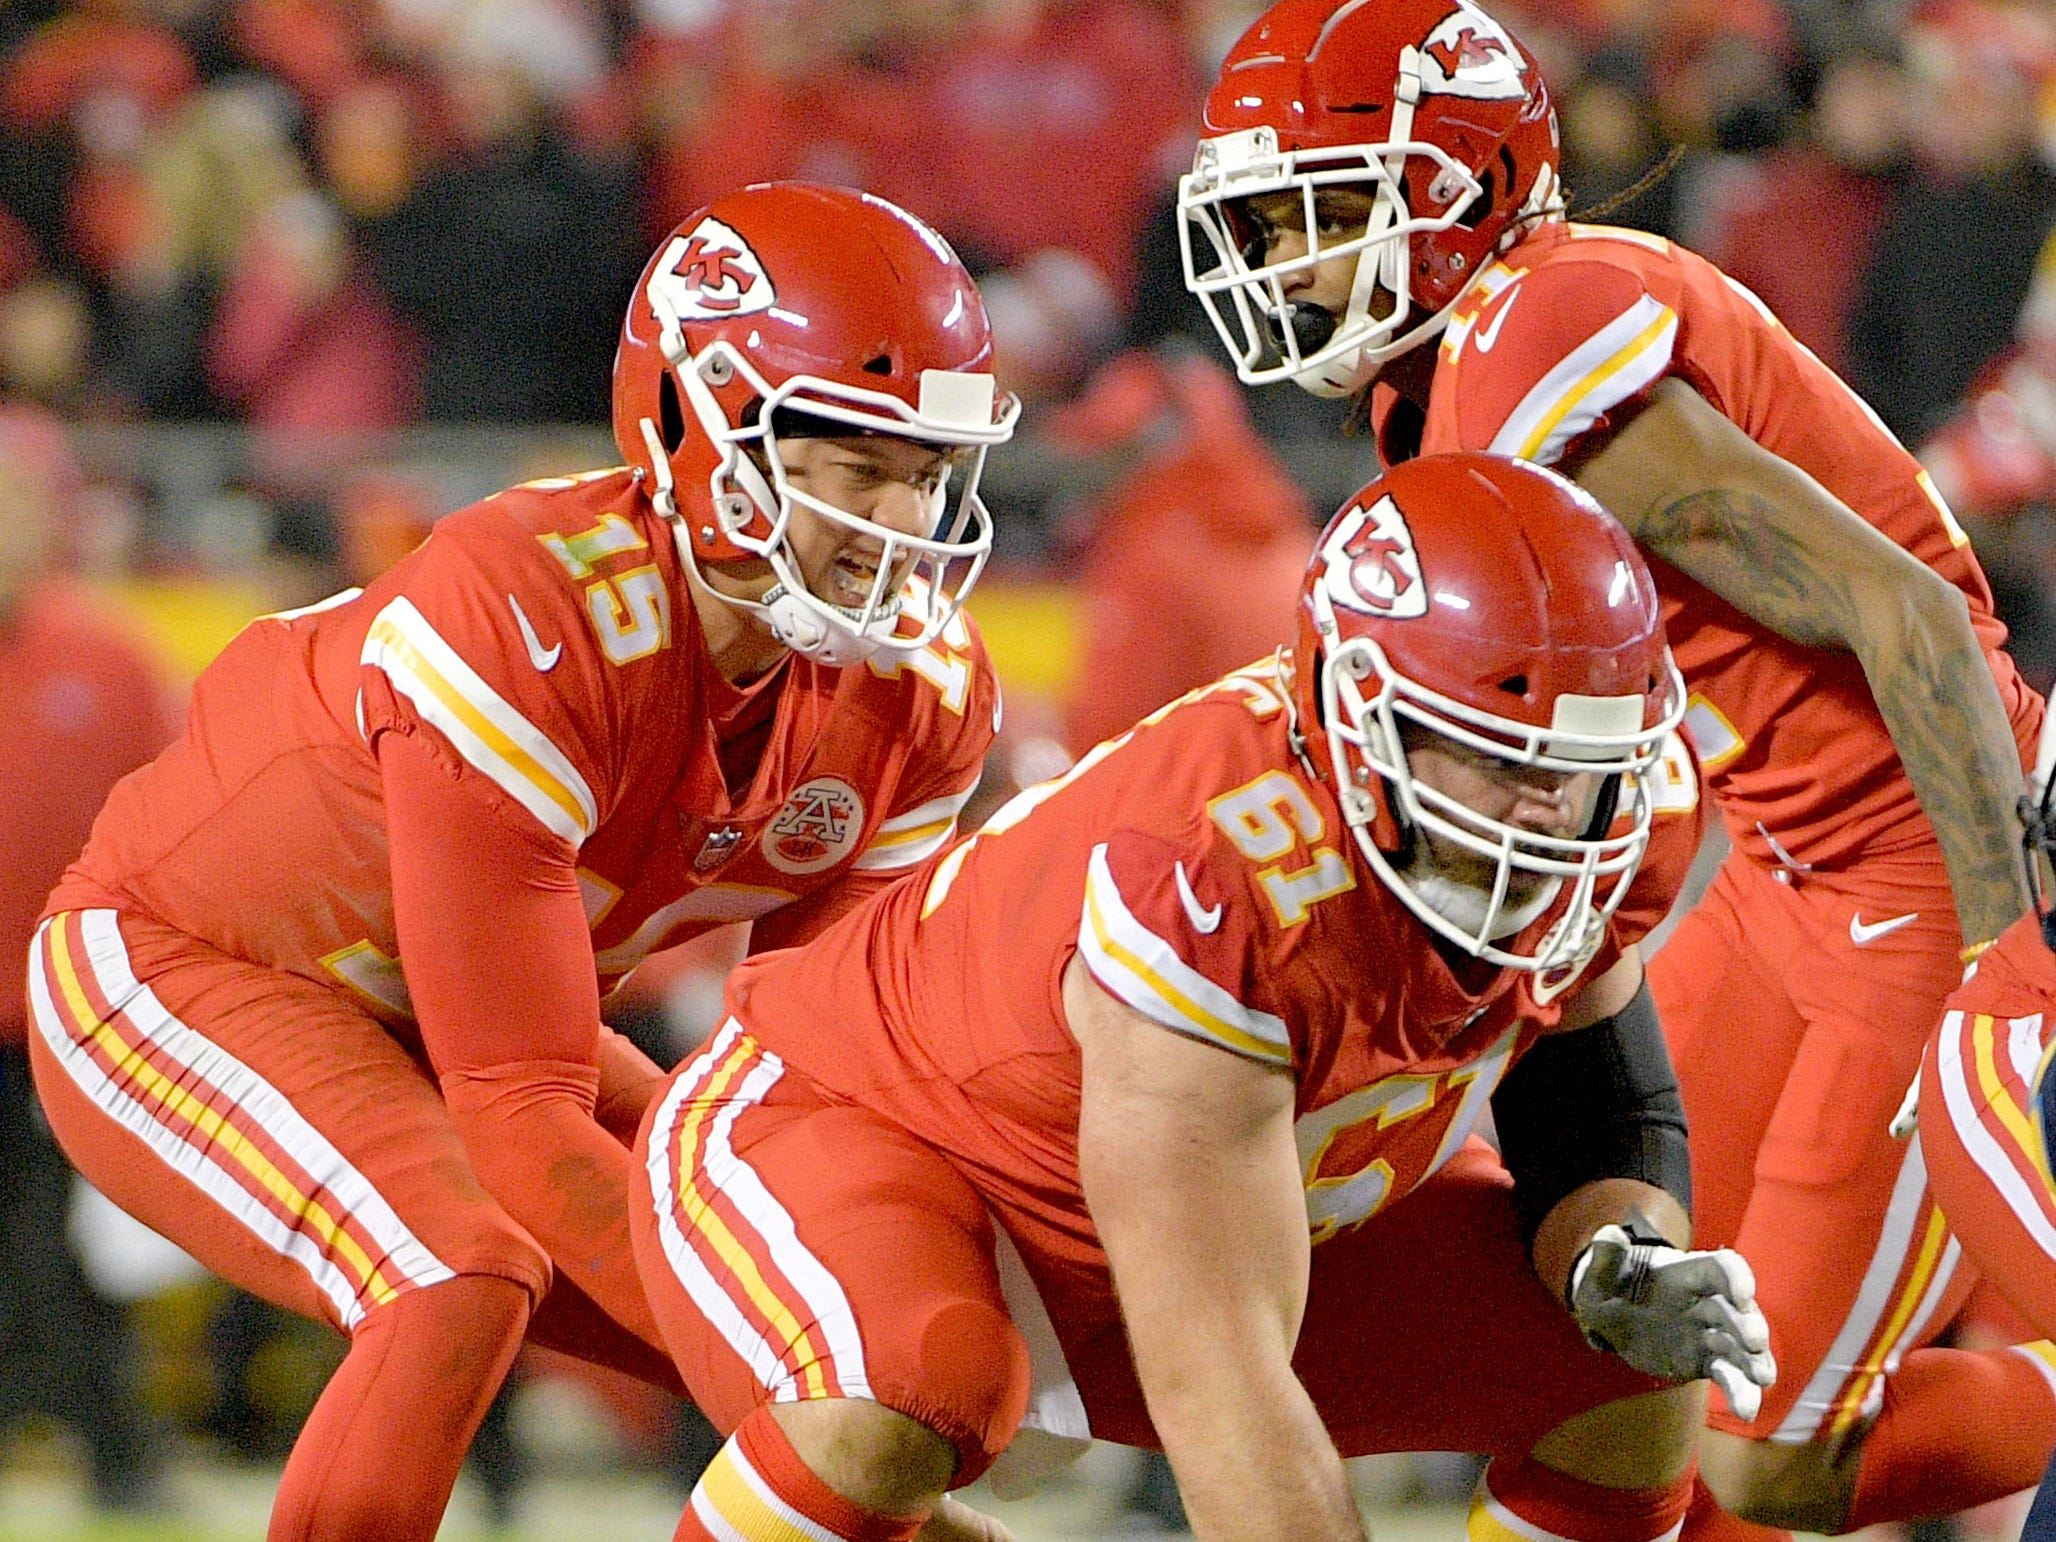 Patrick Mahomes (15) and the Chiefs could have home-field advantage in the AFC once Sunday night is over. And maybe not.